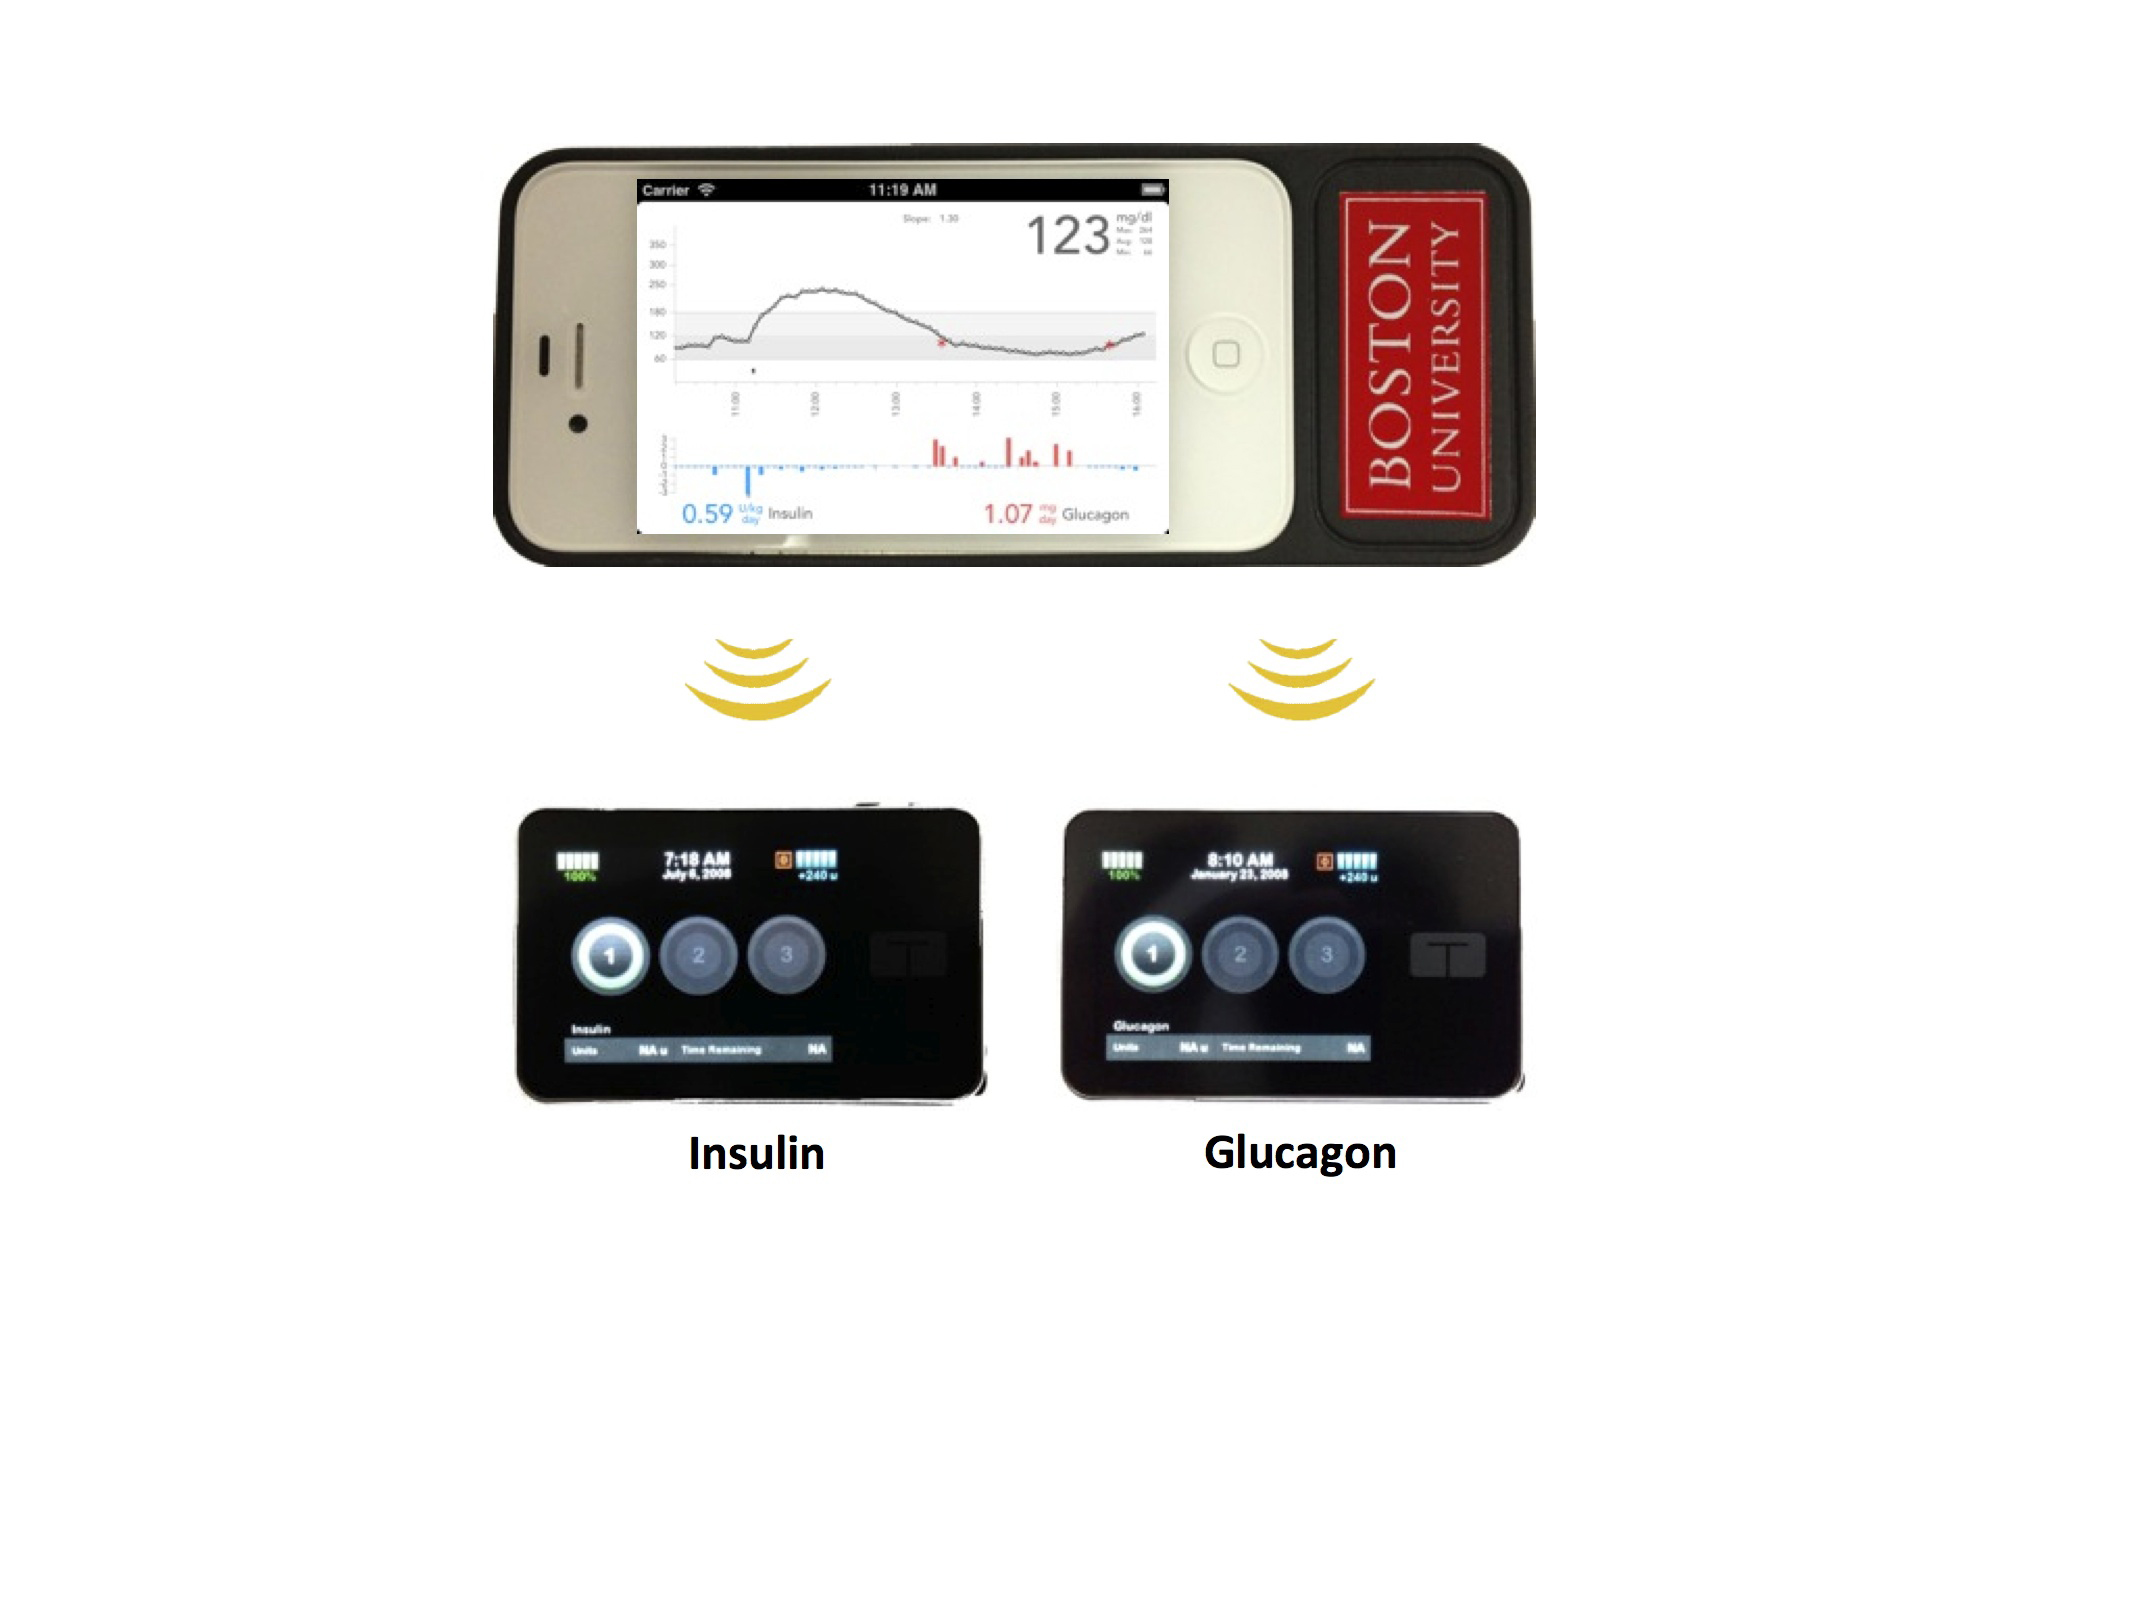 The bionic pancreas consists of a smartphone, top, hardwired to a continuous glucose monitor and two pumps, bottom, that pumps deliver doses of insulin or glucagon every five minutes.